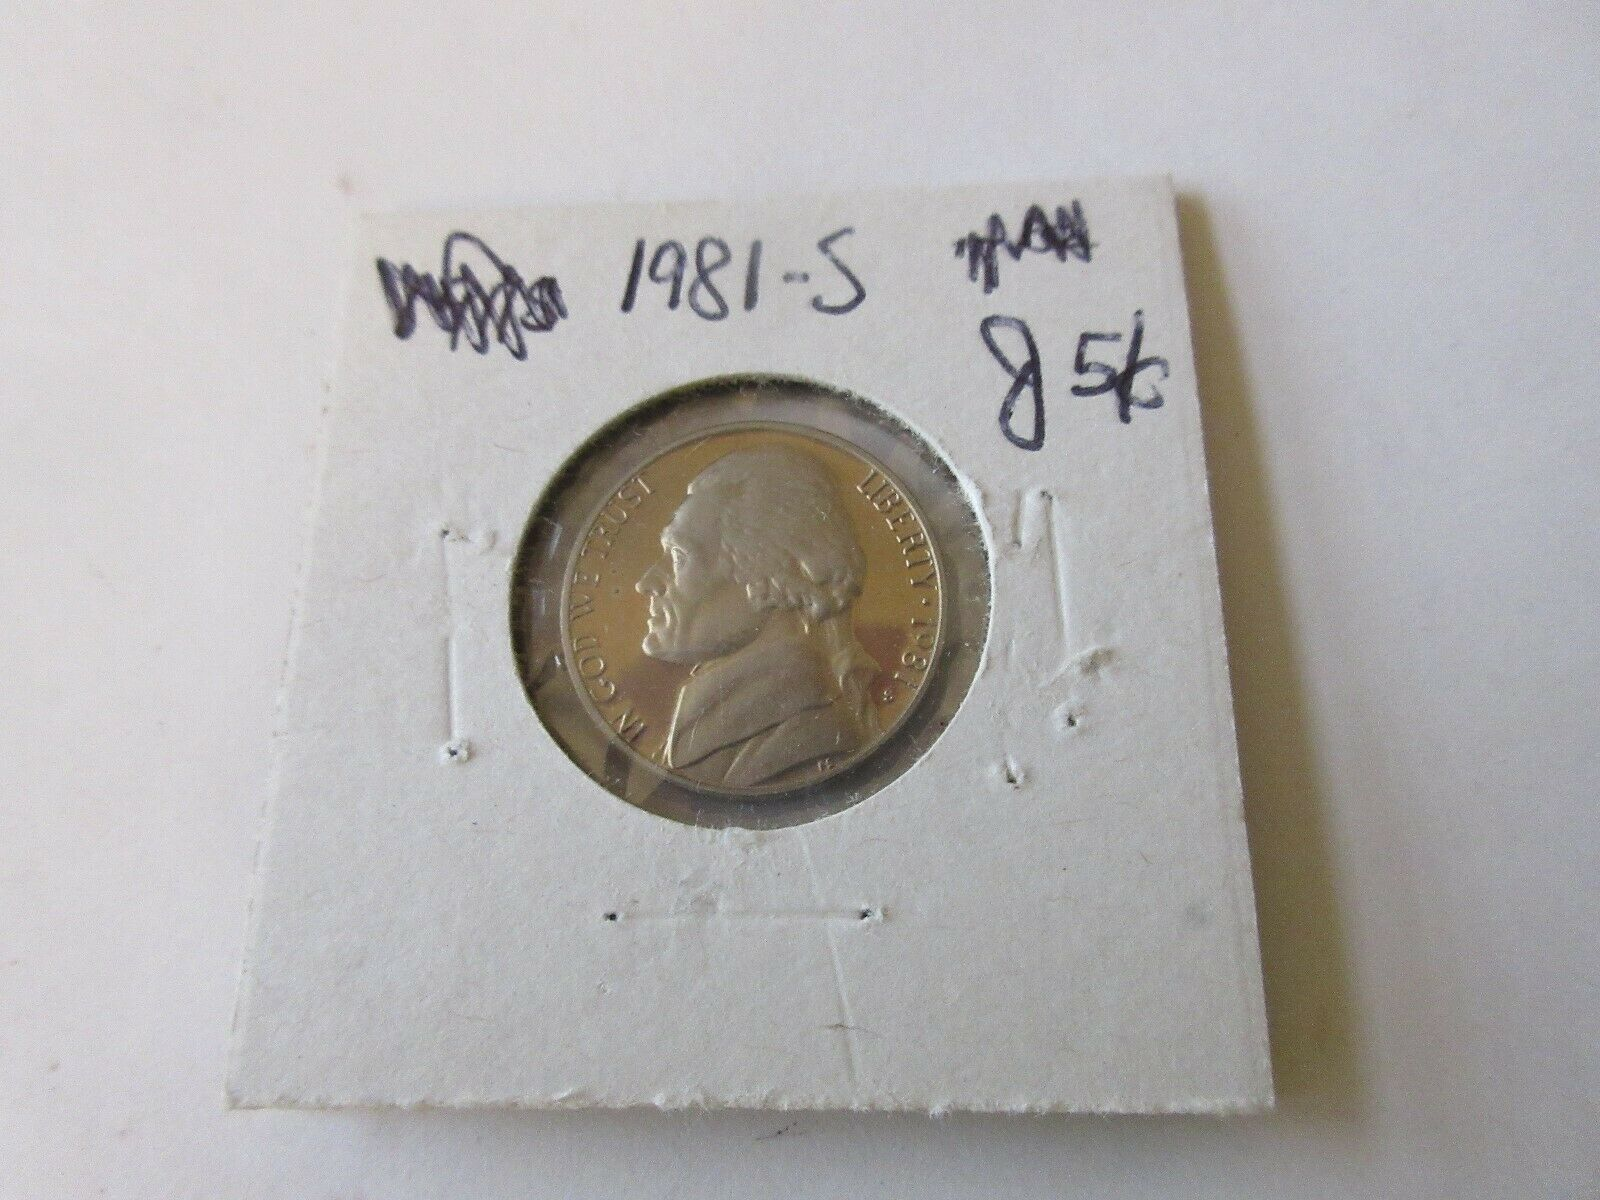 1981-S Proof Jefferson 5 Cents , Uncirculated